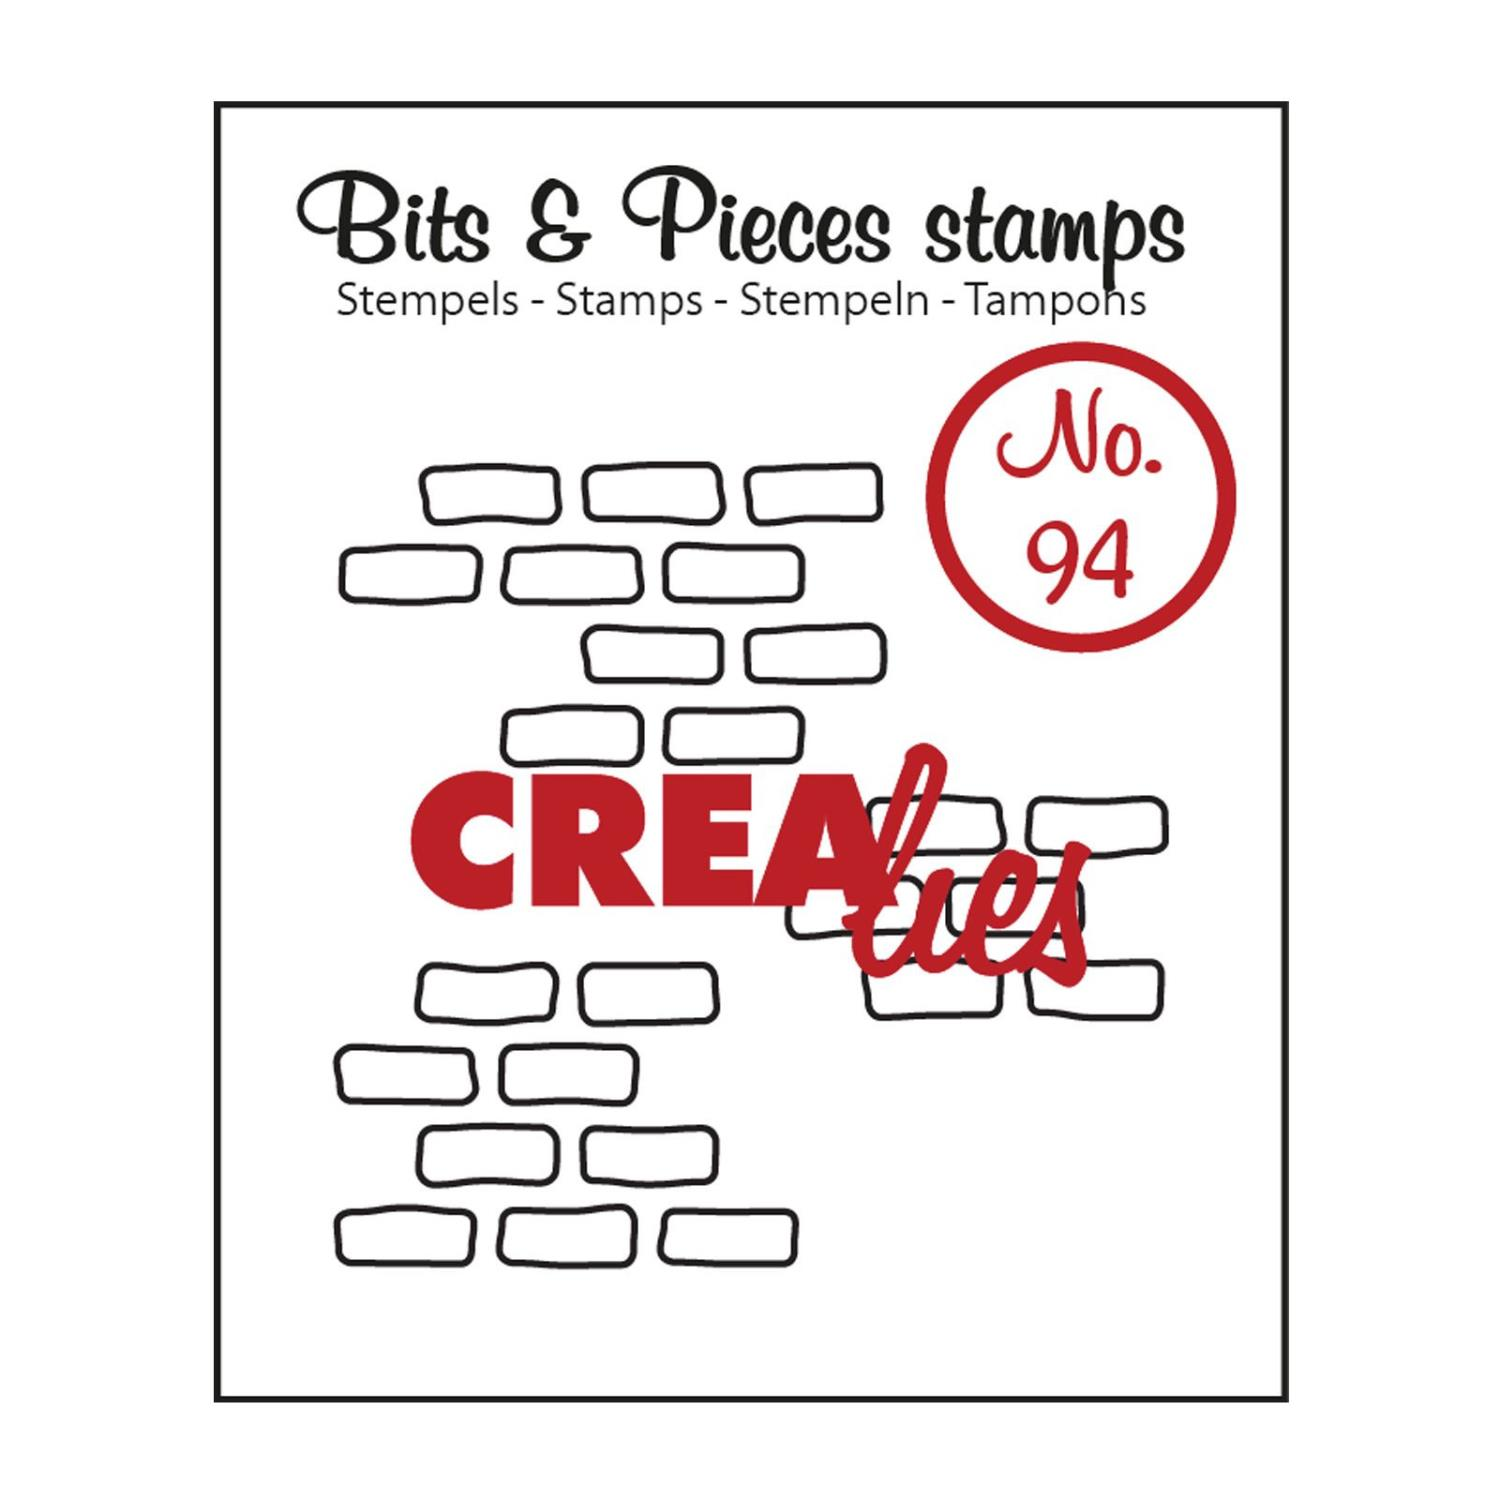 Crealies Bits & Pieces Stamps no.94 3x open bricks medium